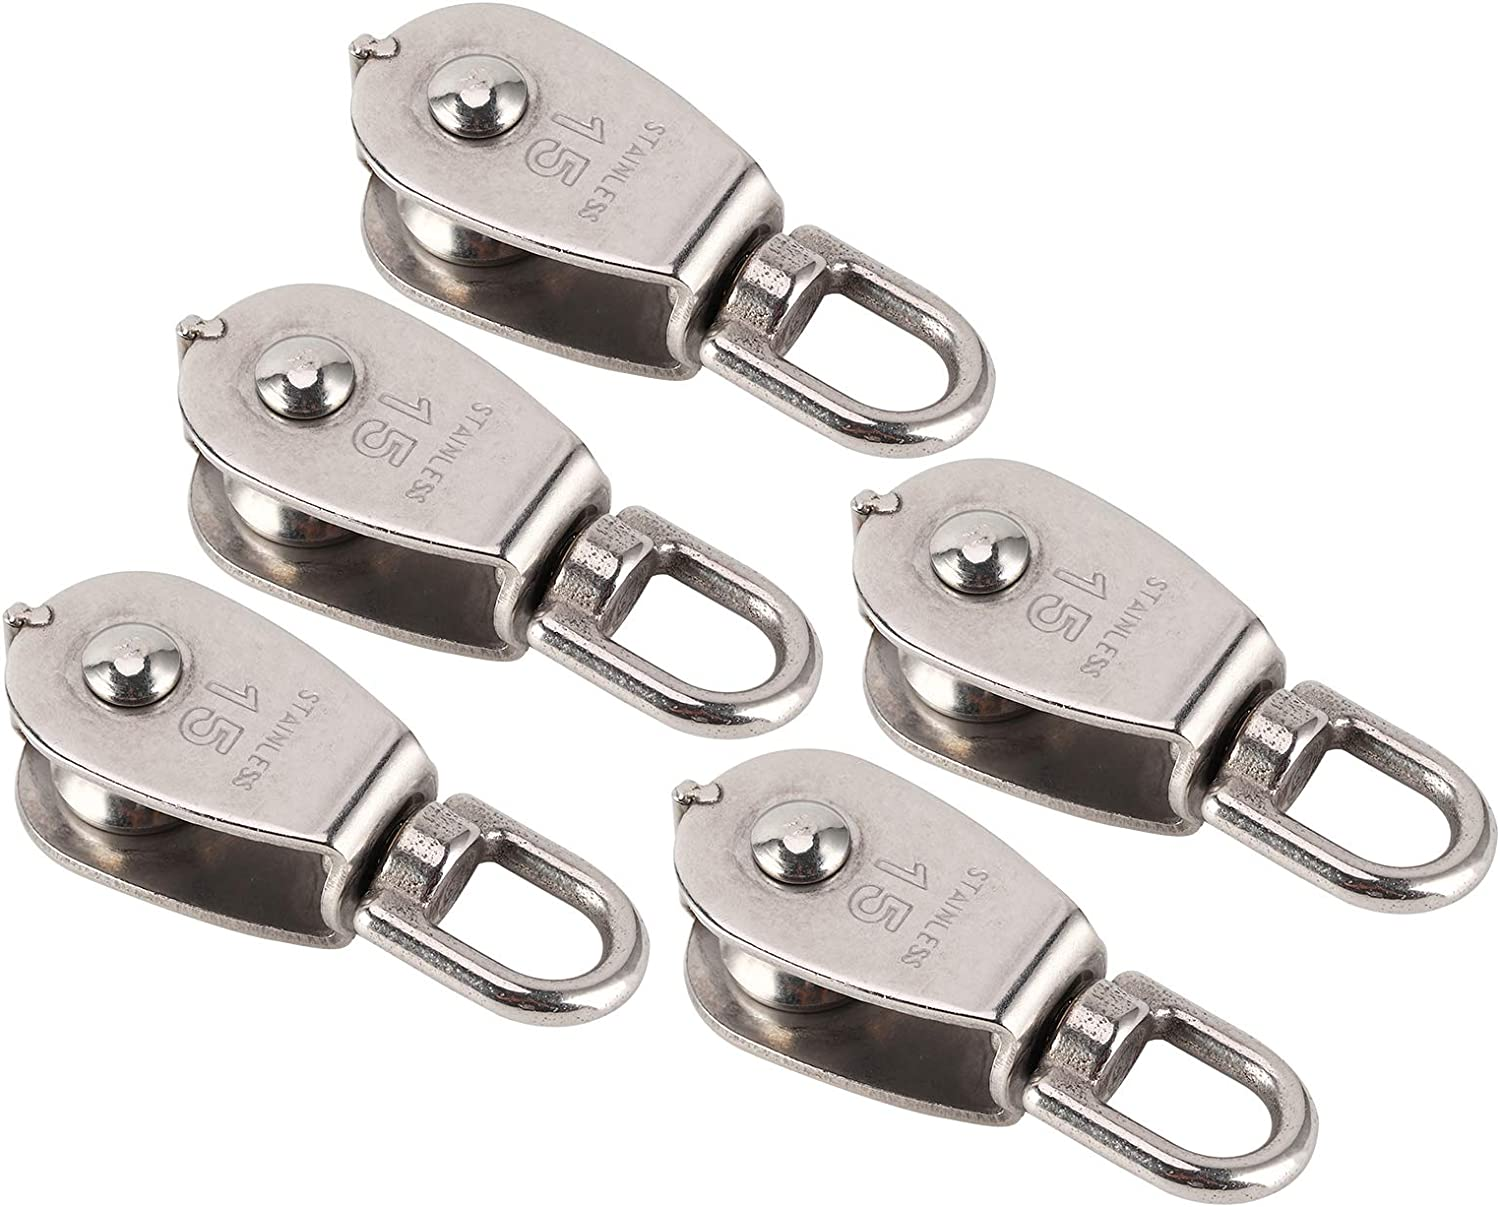 CUTULAMO New arrival Stainless Max 50% OFF Steel Durable Pulley